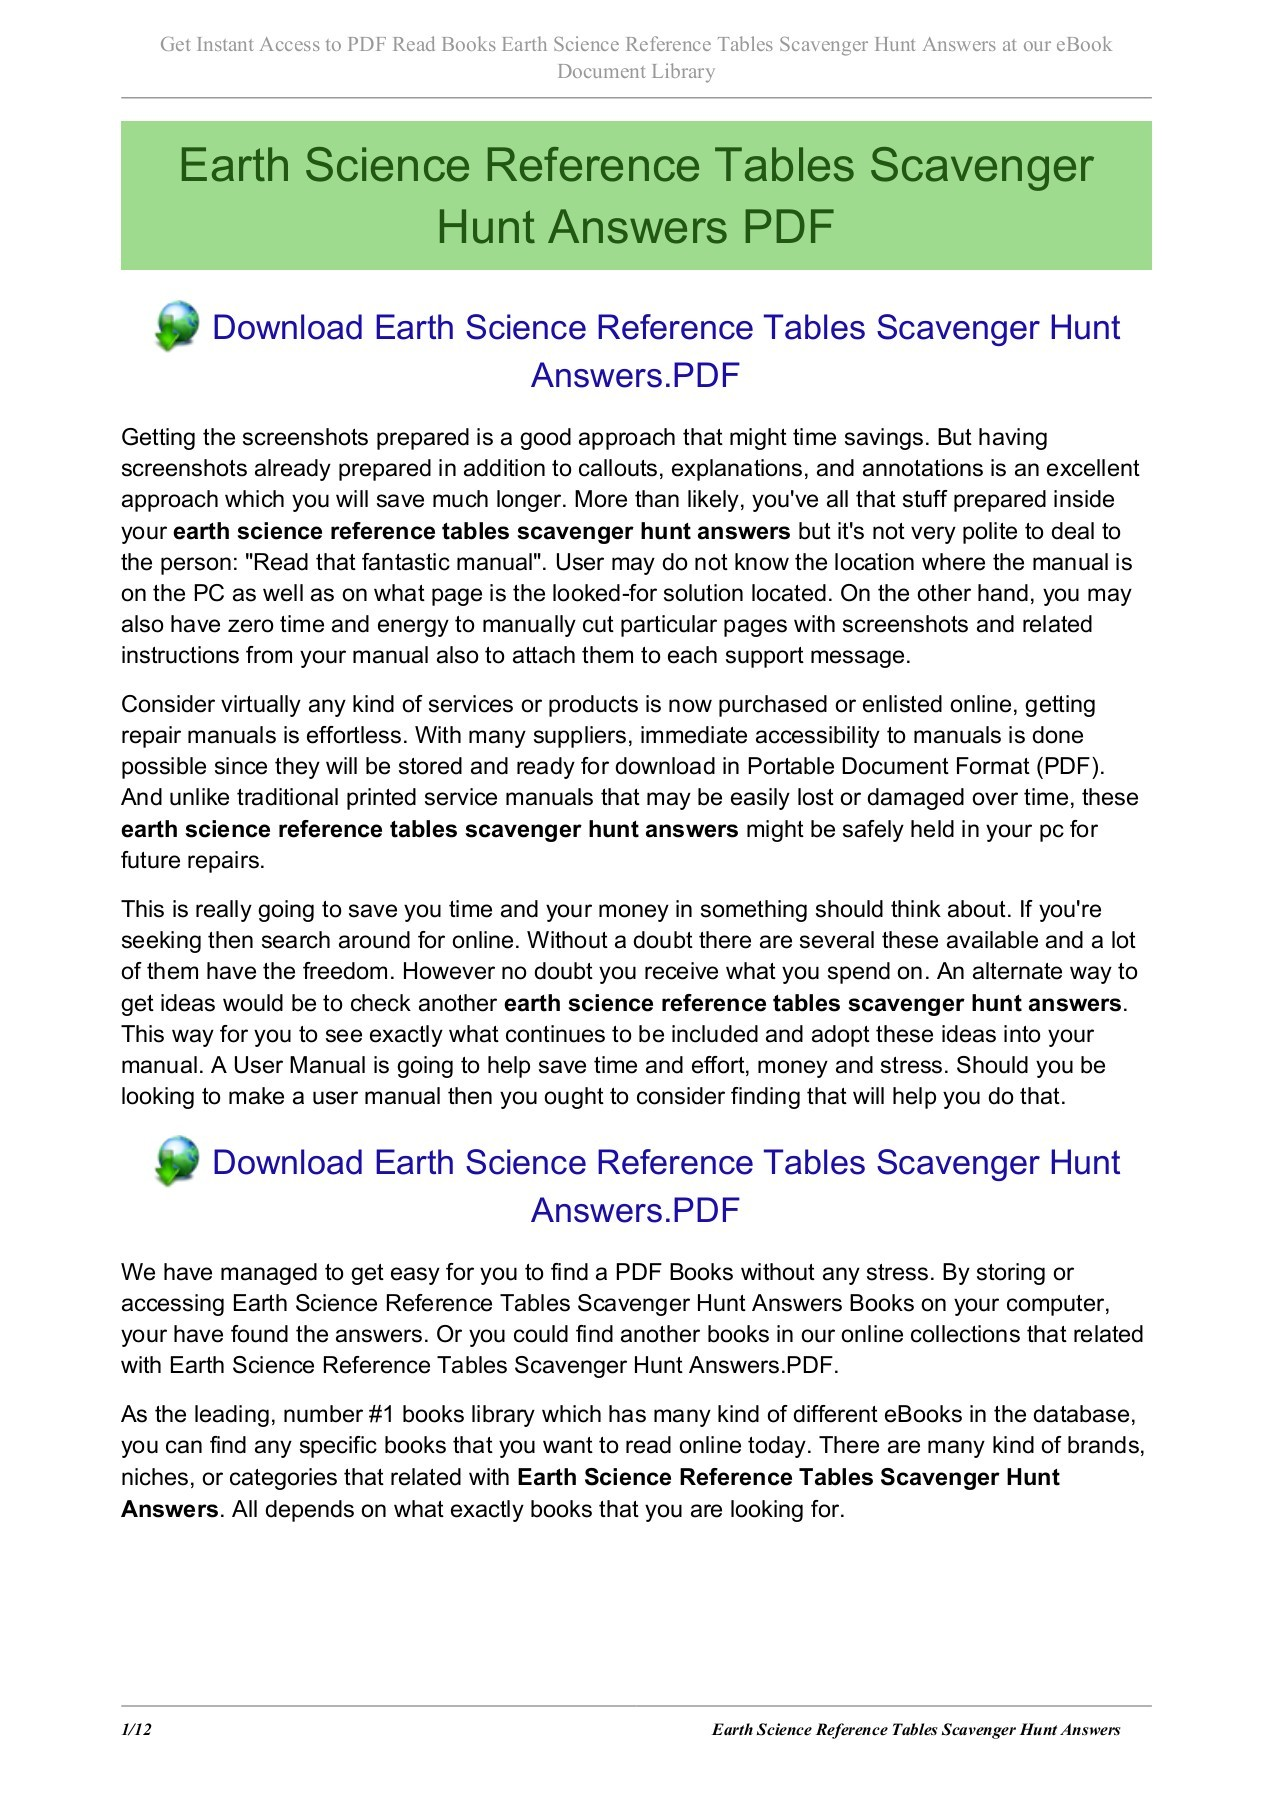 Earth Science Reference Tables Scavenger Hunt